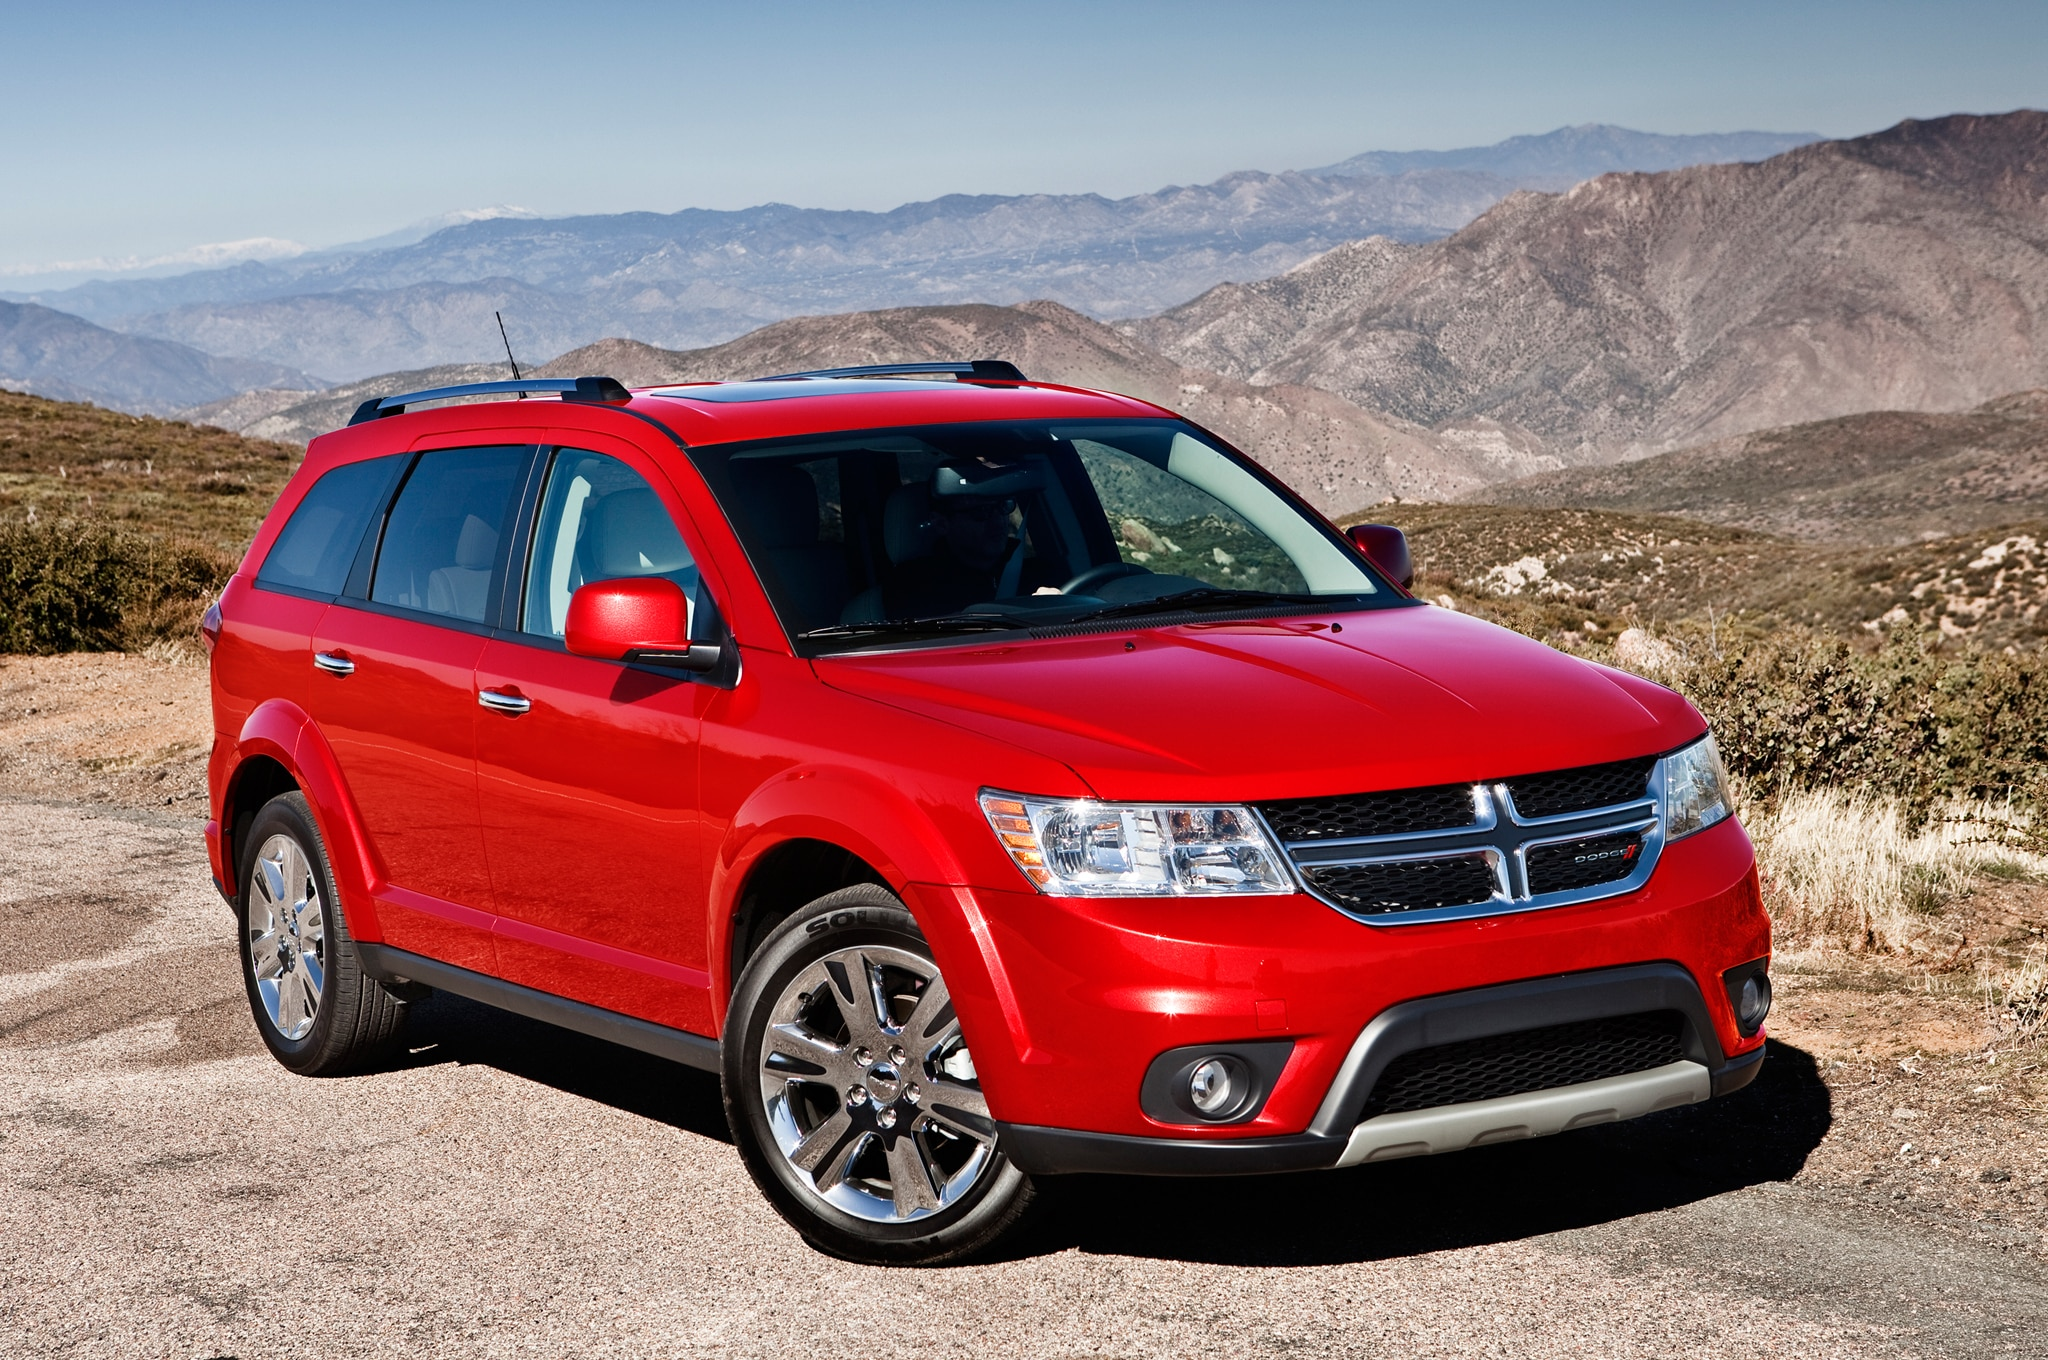 hight resolution of 2014 dodge journey front three quarters view